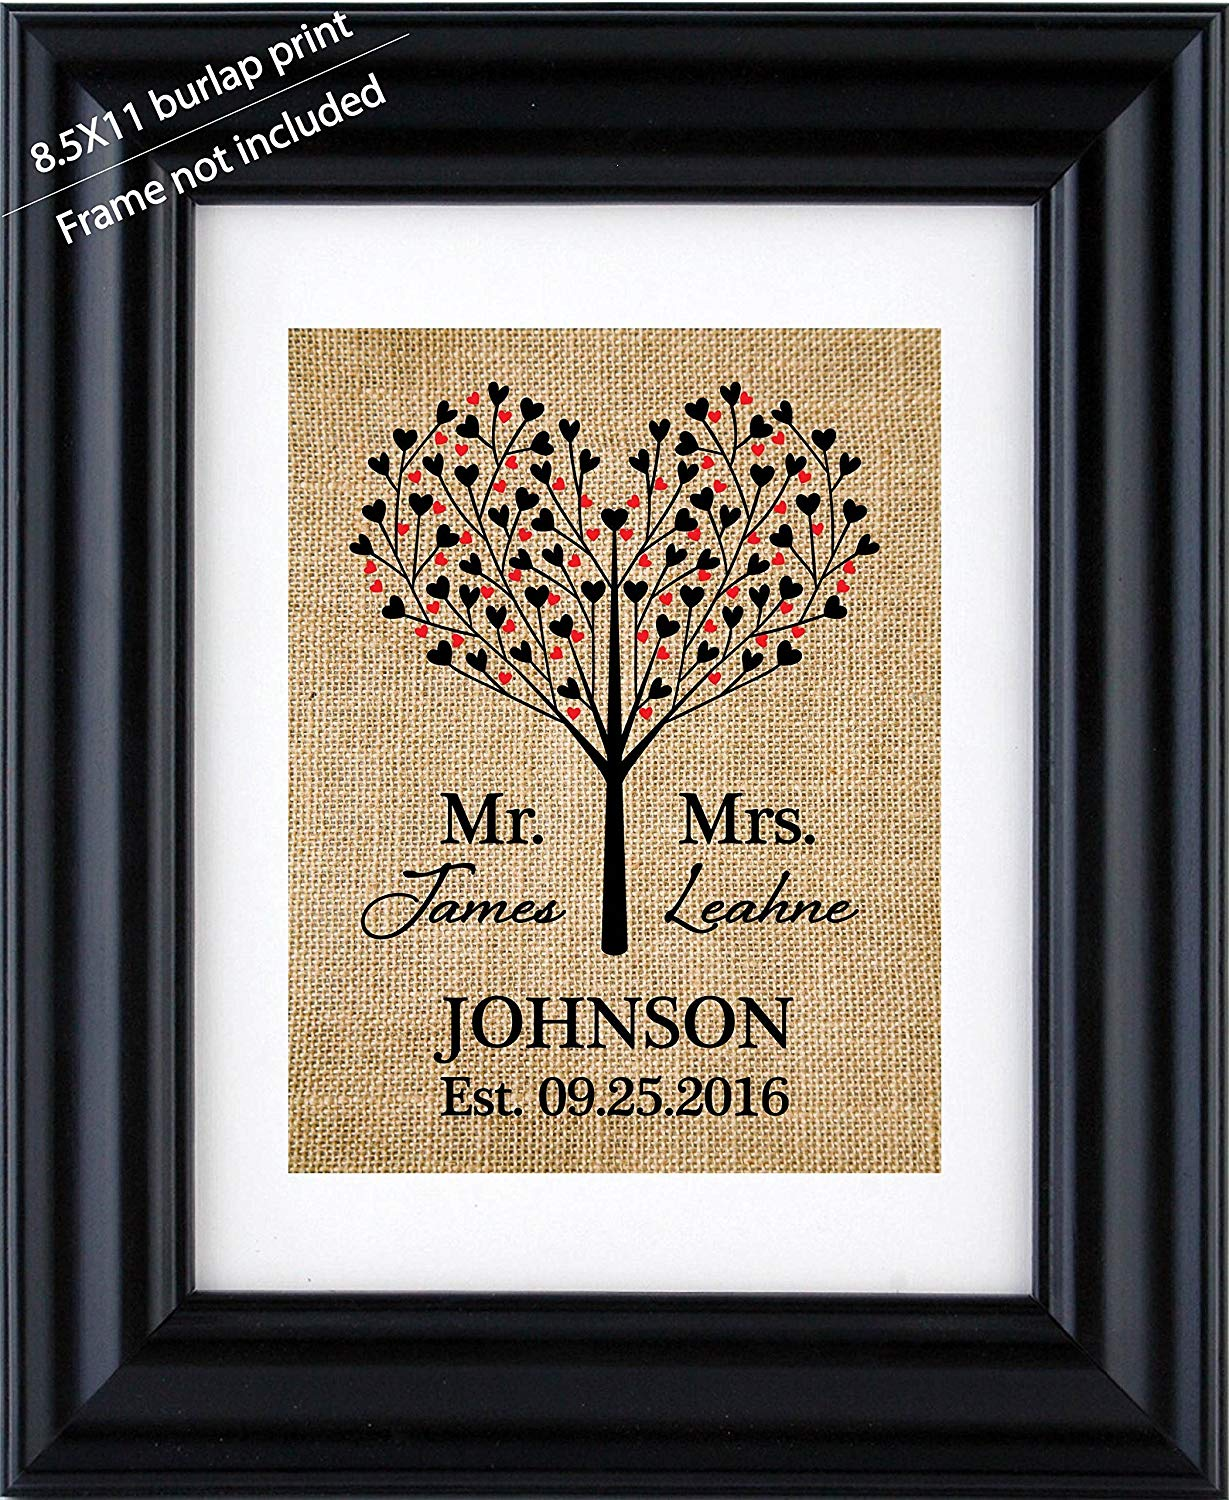 Mr. & Mrs. Personalized burlap art, Mr & Mrs Wedding sign, Heart Tree wedding shower decor with couple name, Handmade anniversary gift -Burlap print- 1Q (Frame not Included)